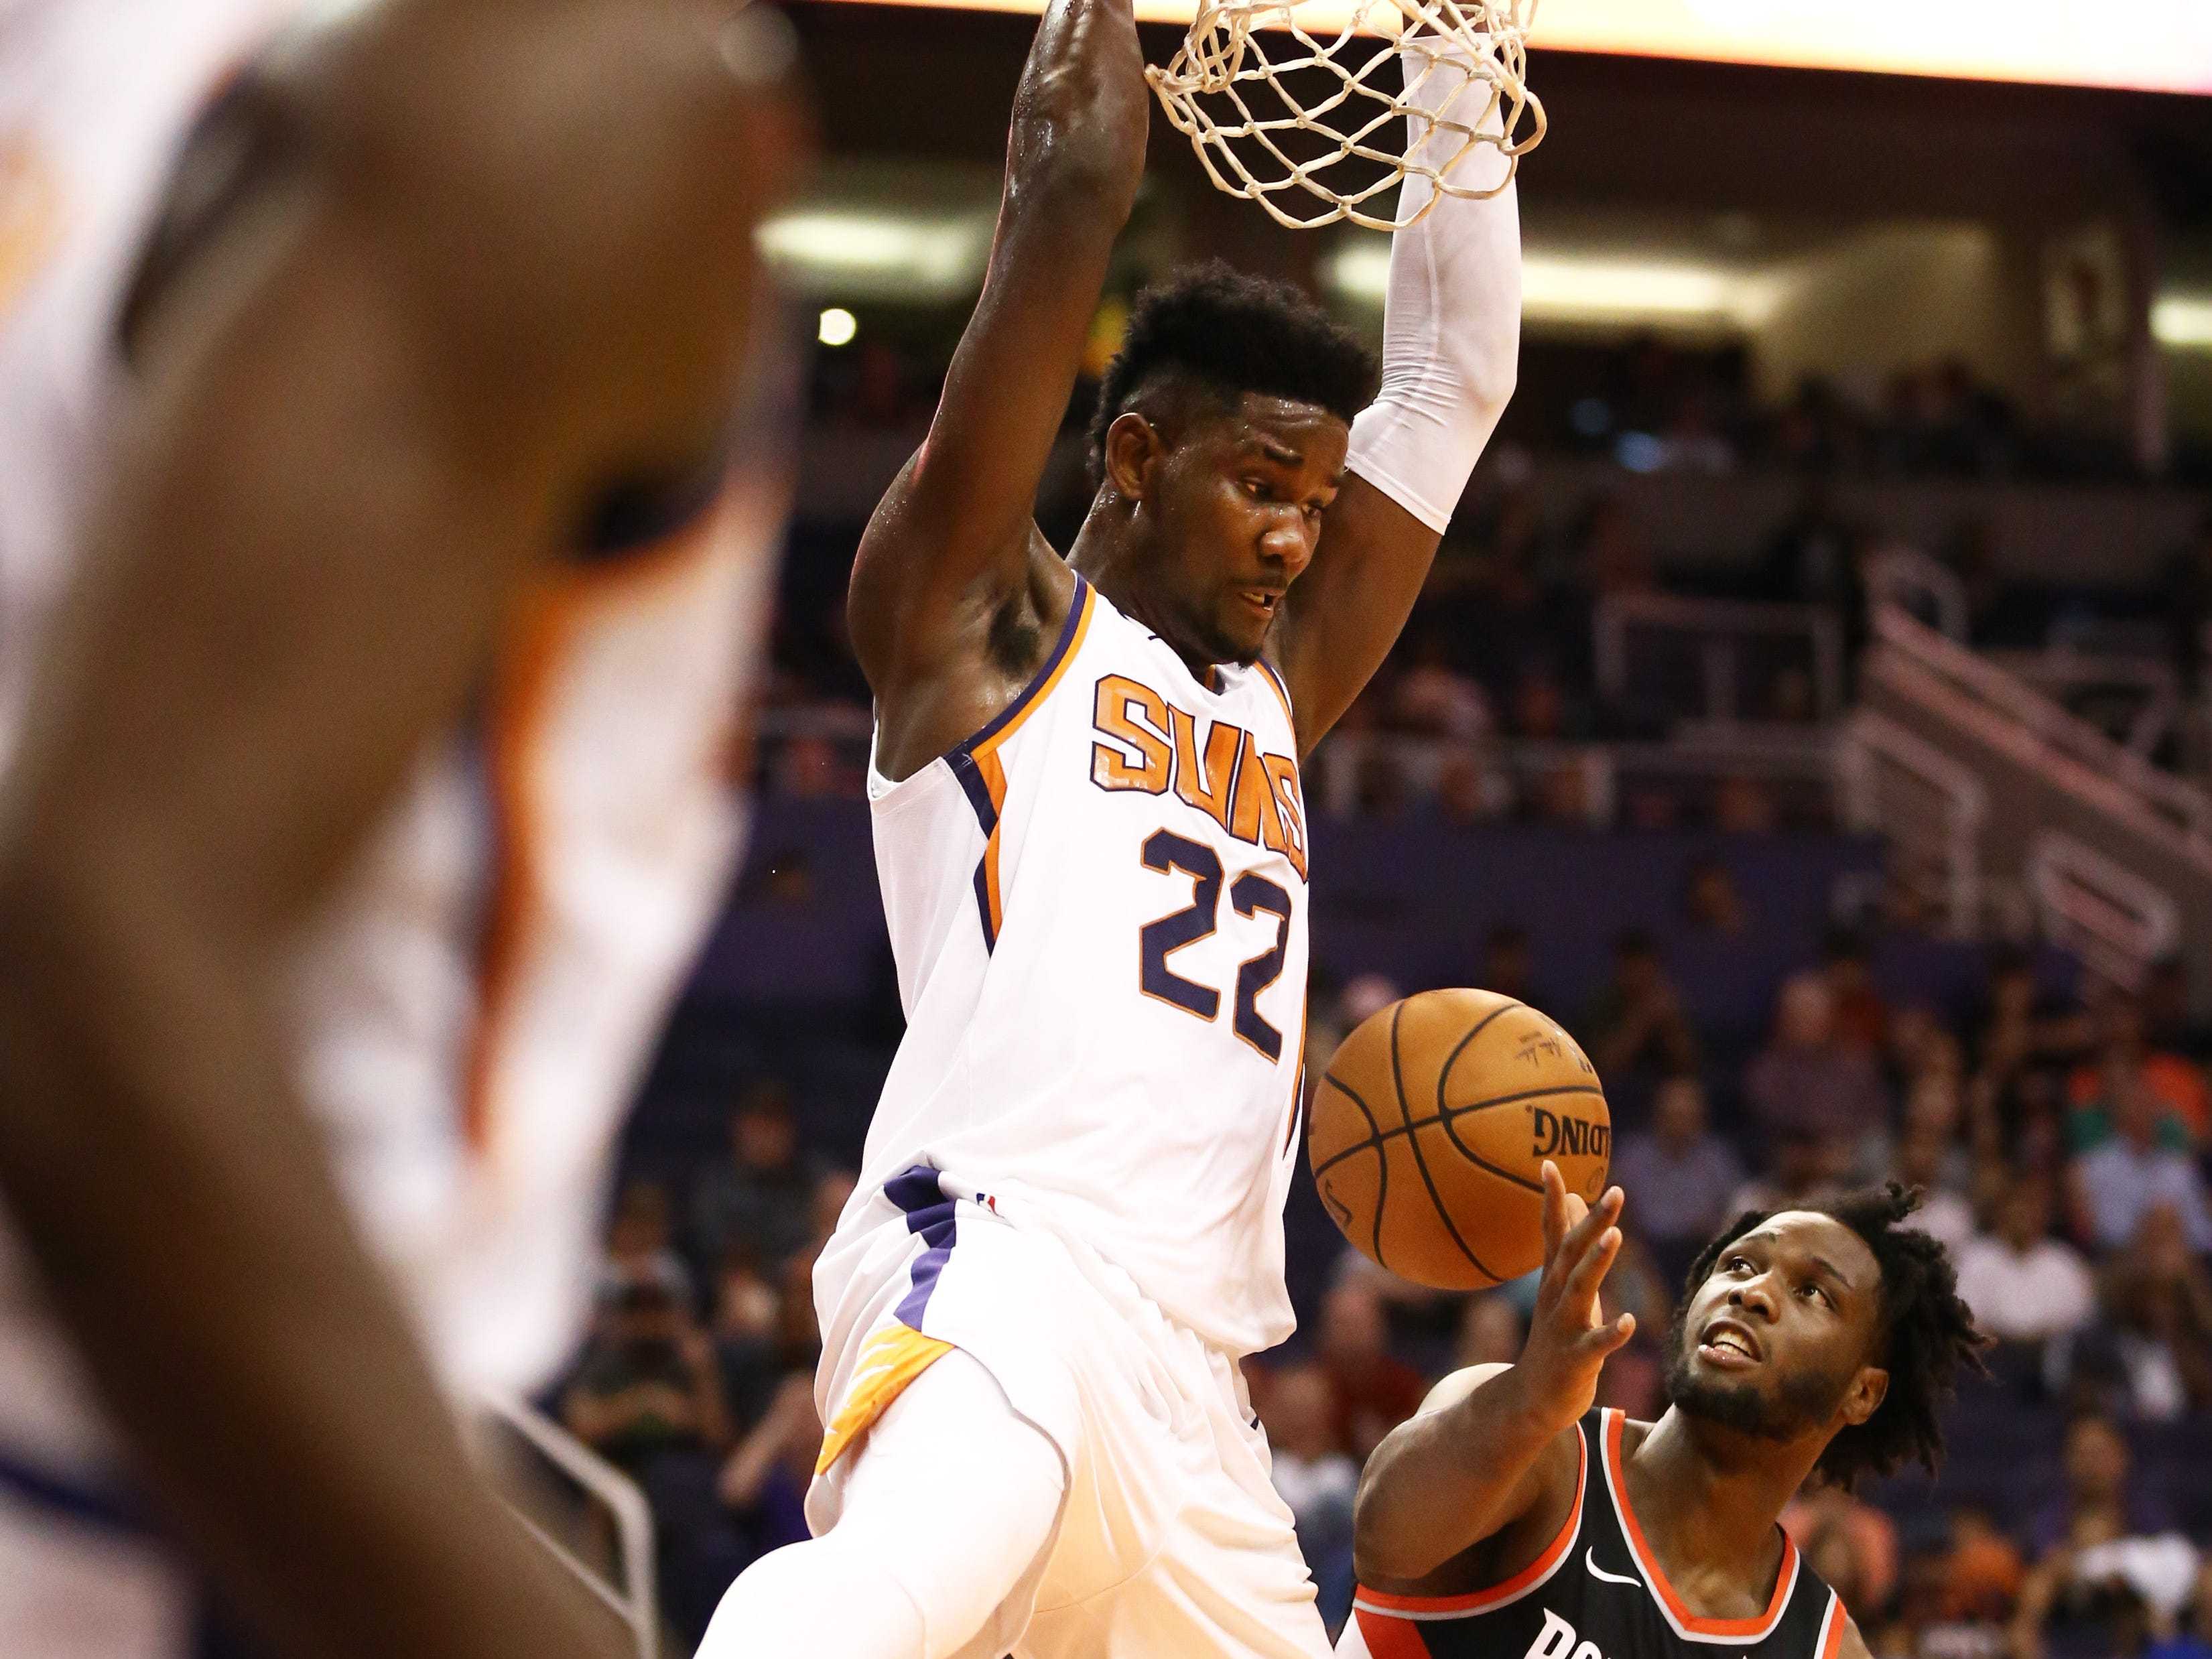 Phoenix Suns center Deandre Ayton shoots dunks the ball against the Portland Trail Blazers during a preseason game at Talking Stick Resort Arena on Oct. 5, 2018, in Phoenix, Ariz.